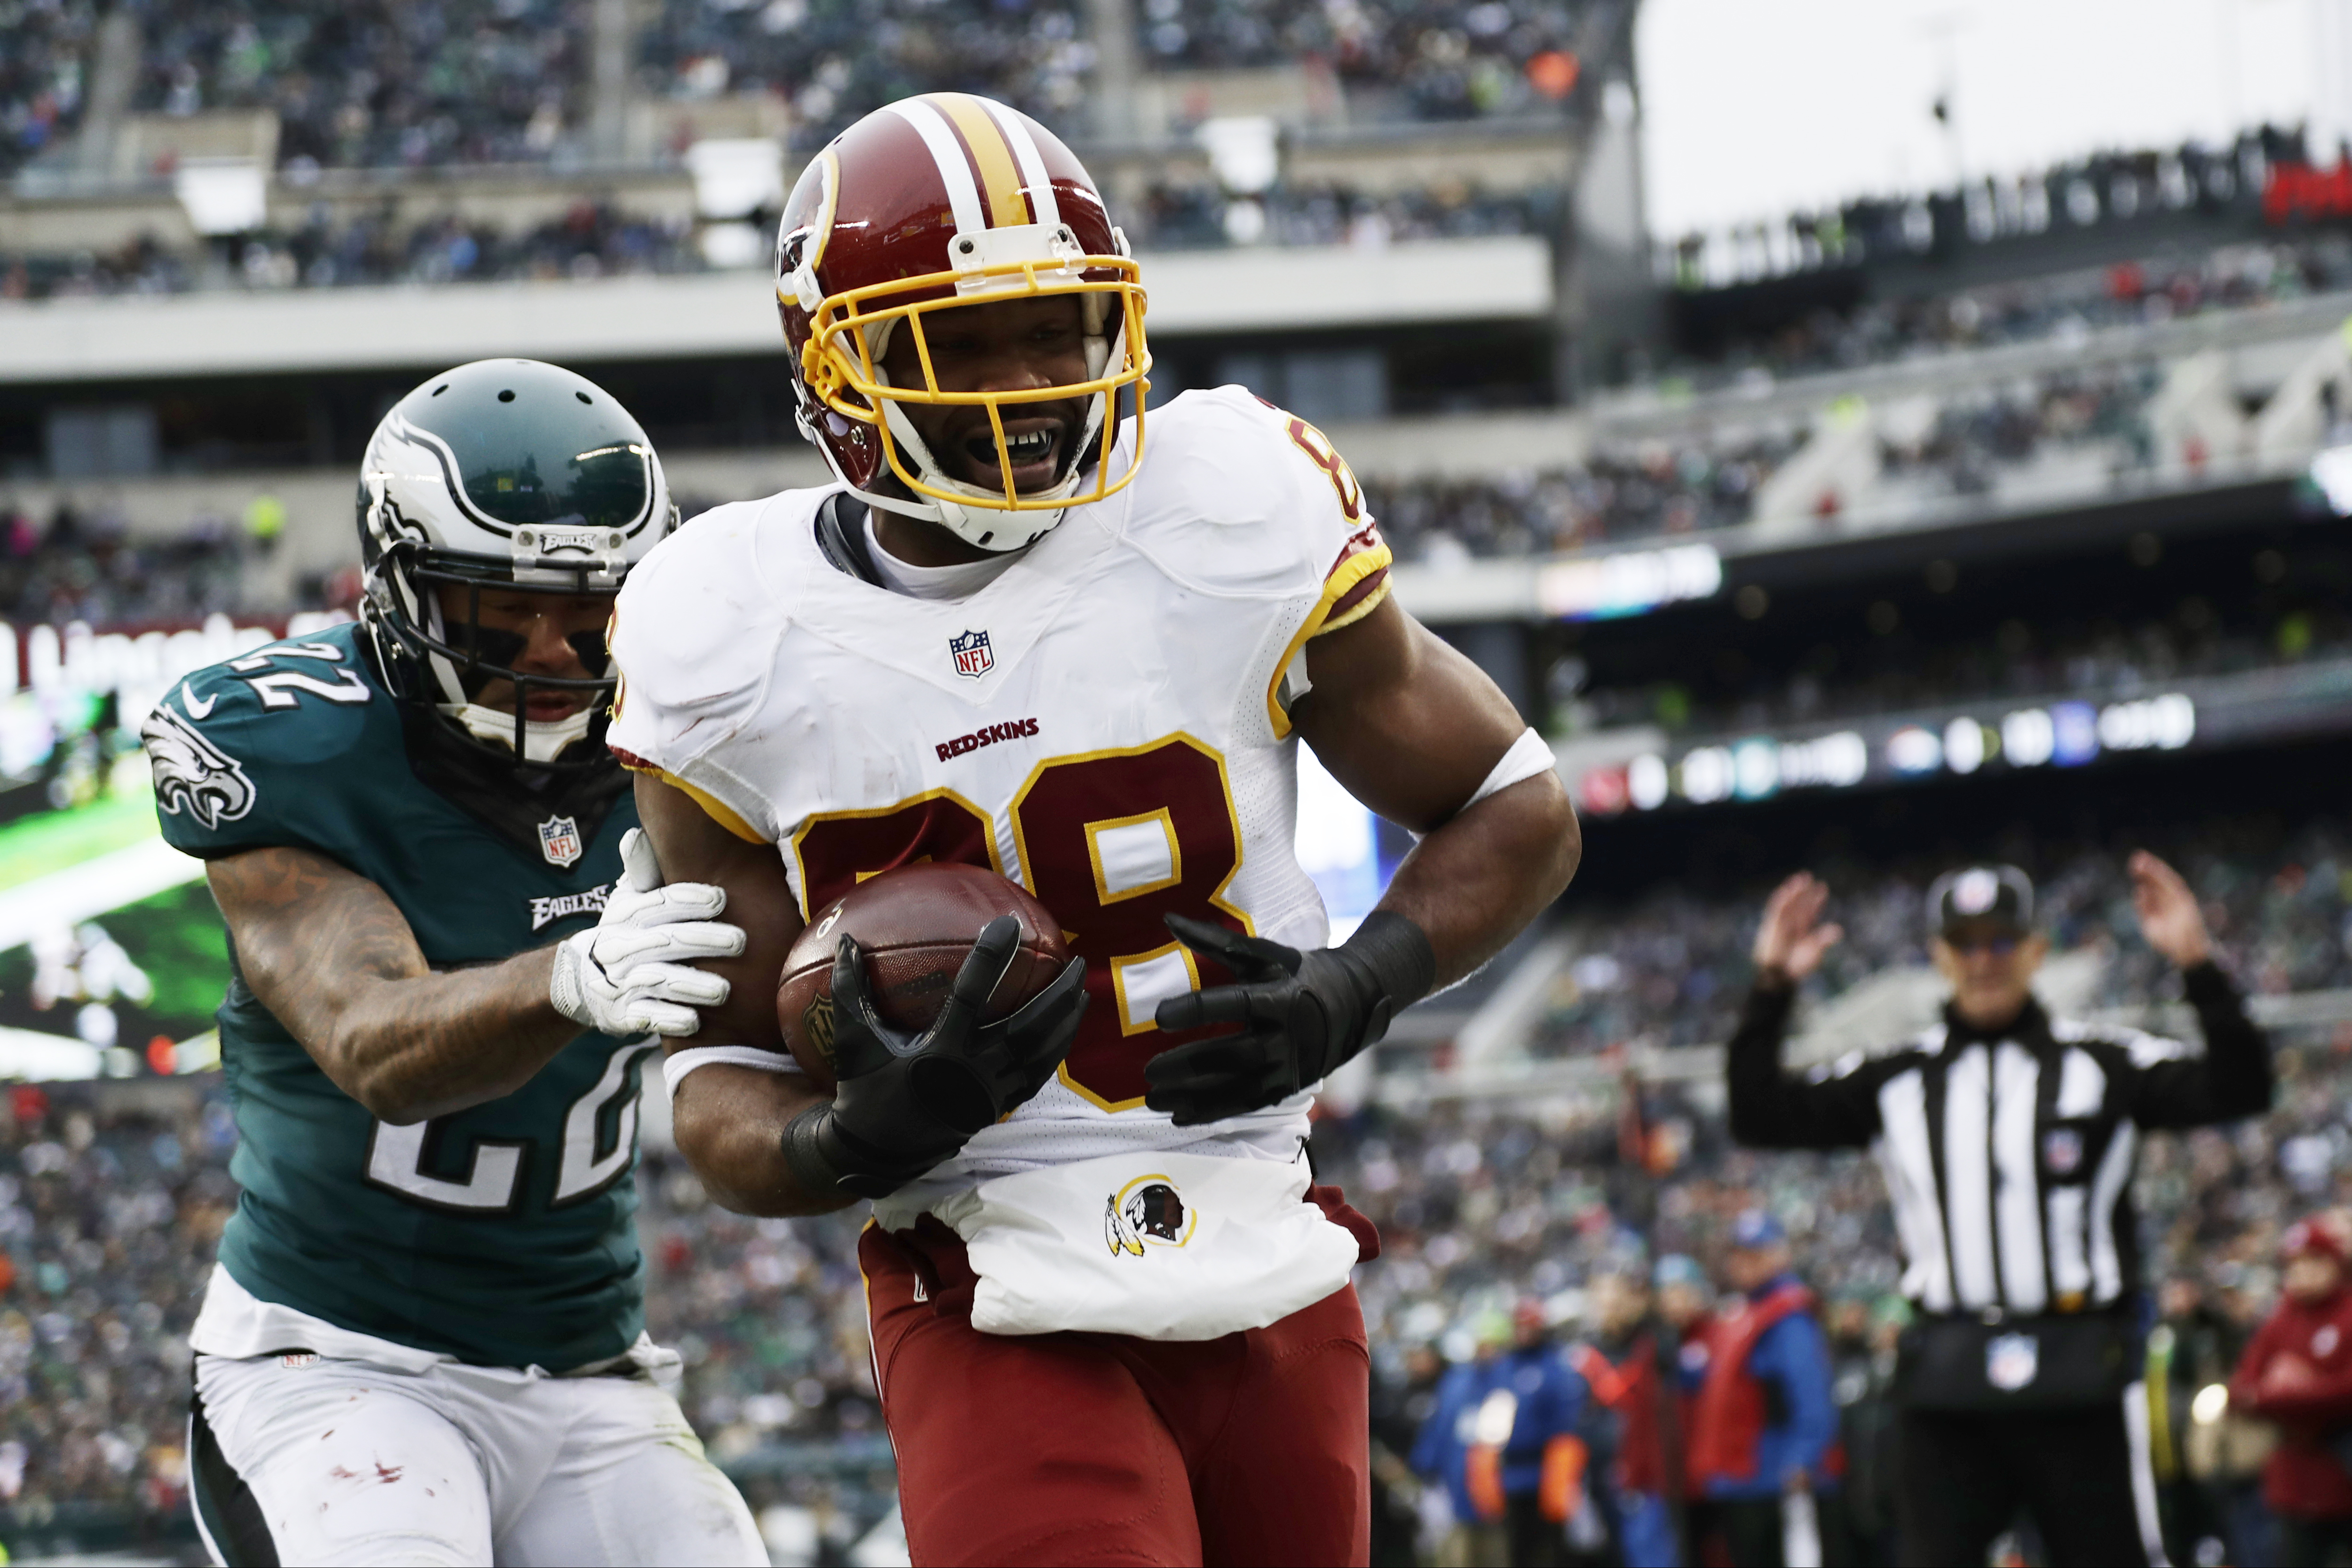 FILE - In this Dec. 11, 2016 file photo, Washington Redskins' Pierre Garcon, right, scores a touchdown past Philadelphia Eagles' Nolan Carroll during the second half of an NFL football game in Philadelphia. The veteran wide receiver Garcon hasnt missed a